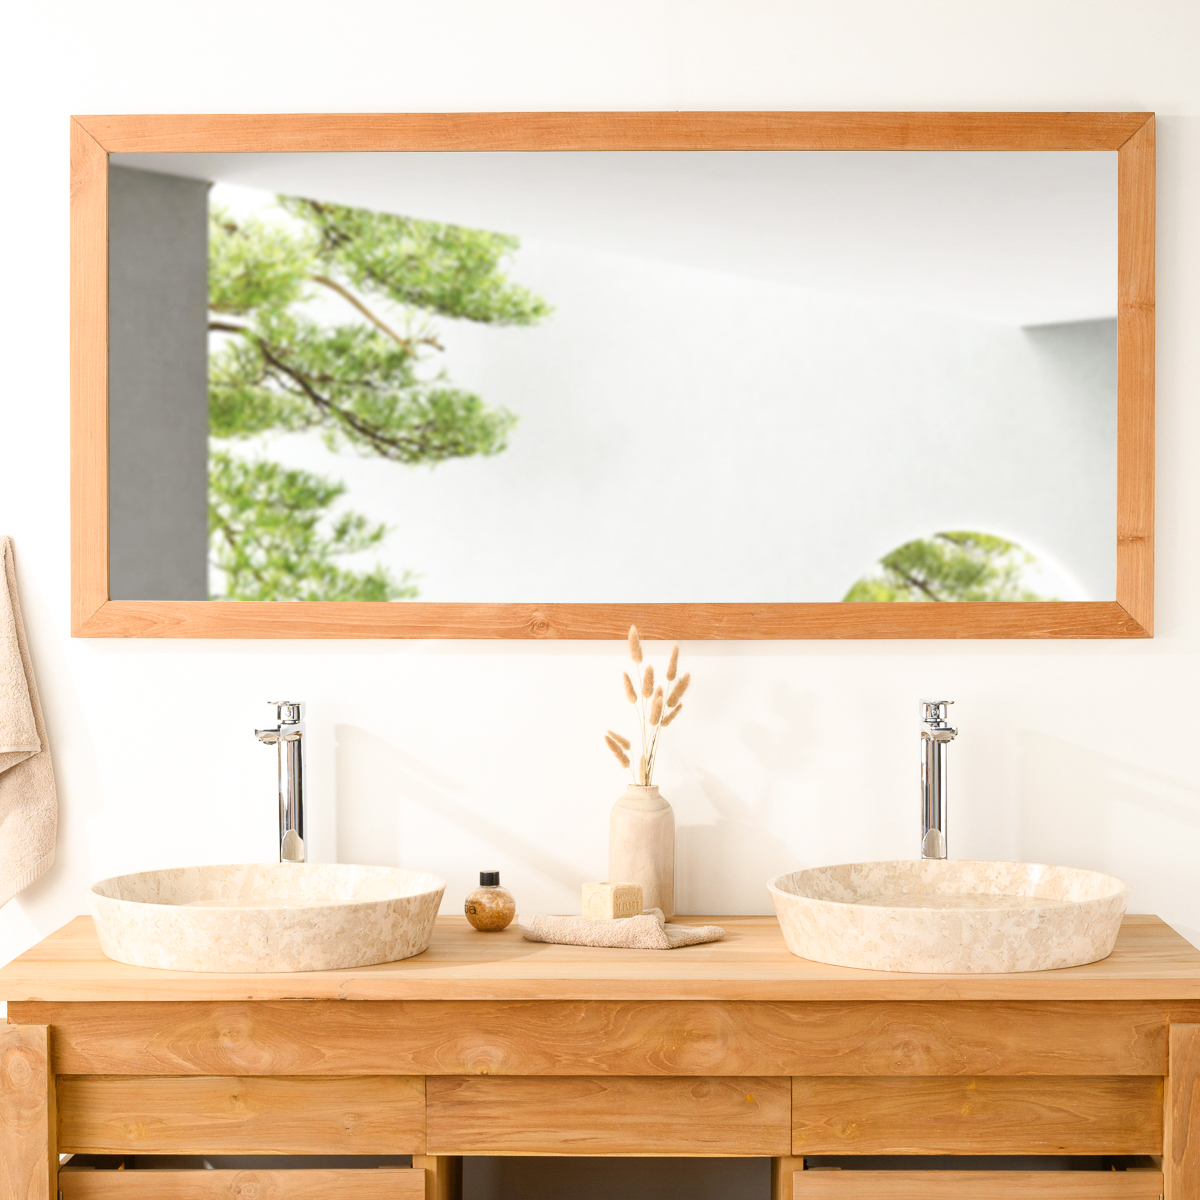 Grand miroir rectangle en teck massif 145x70 for Miroir 100 x 70